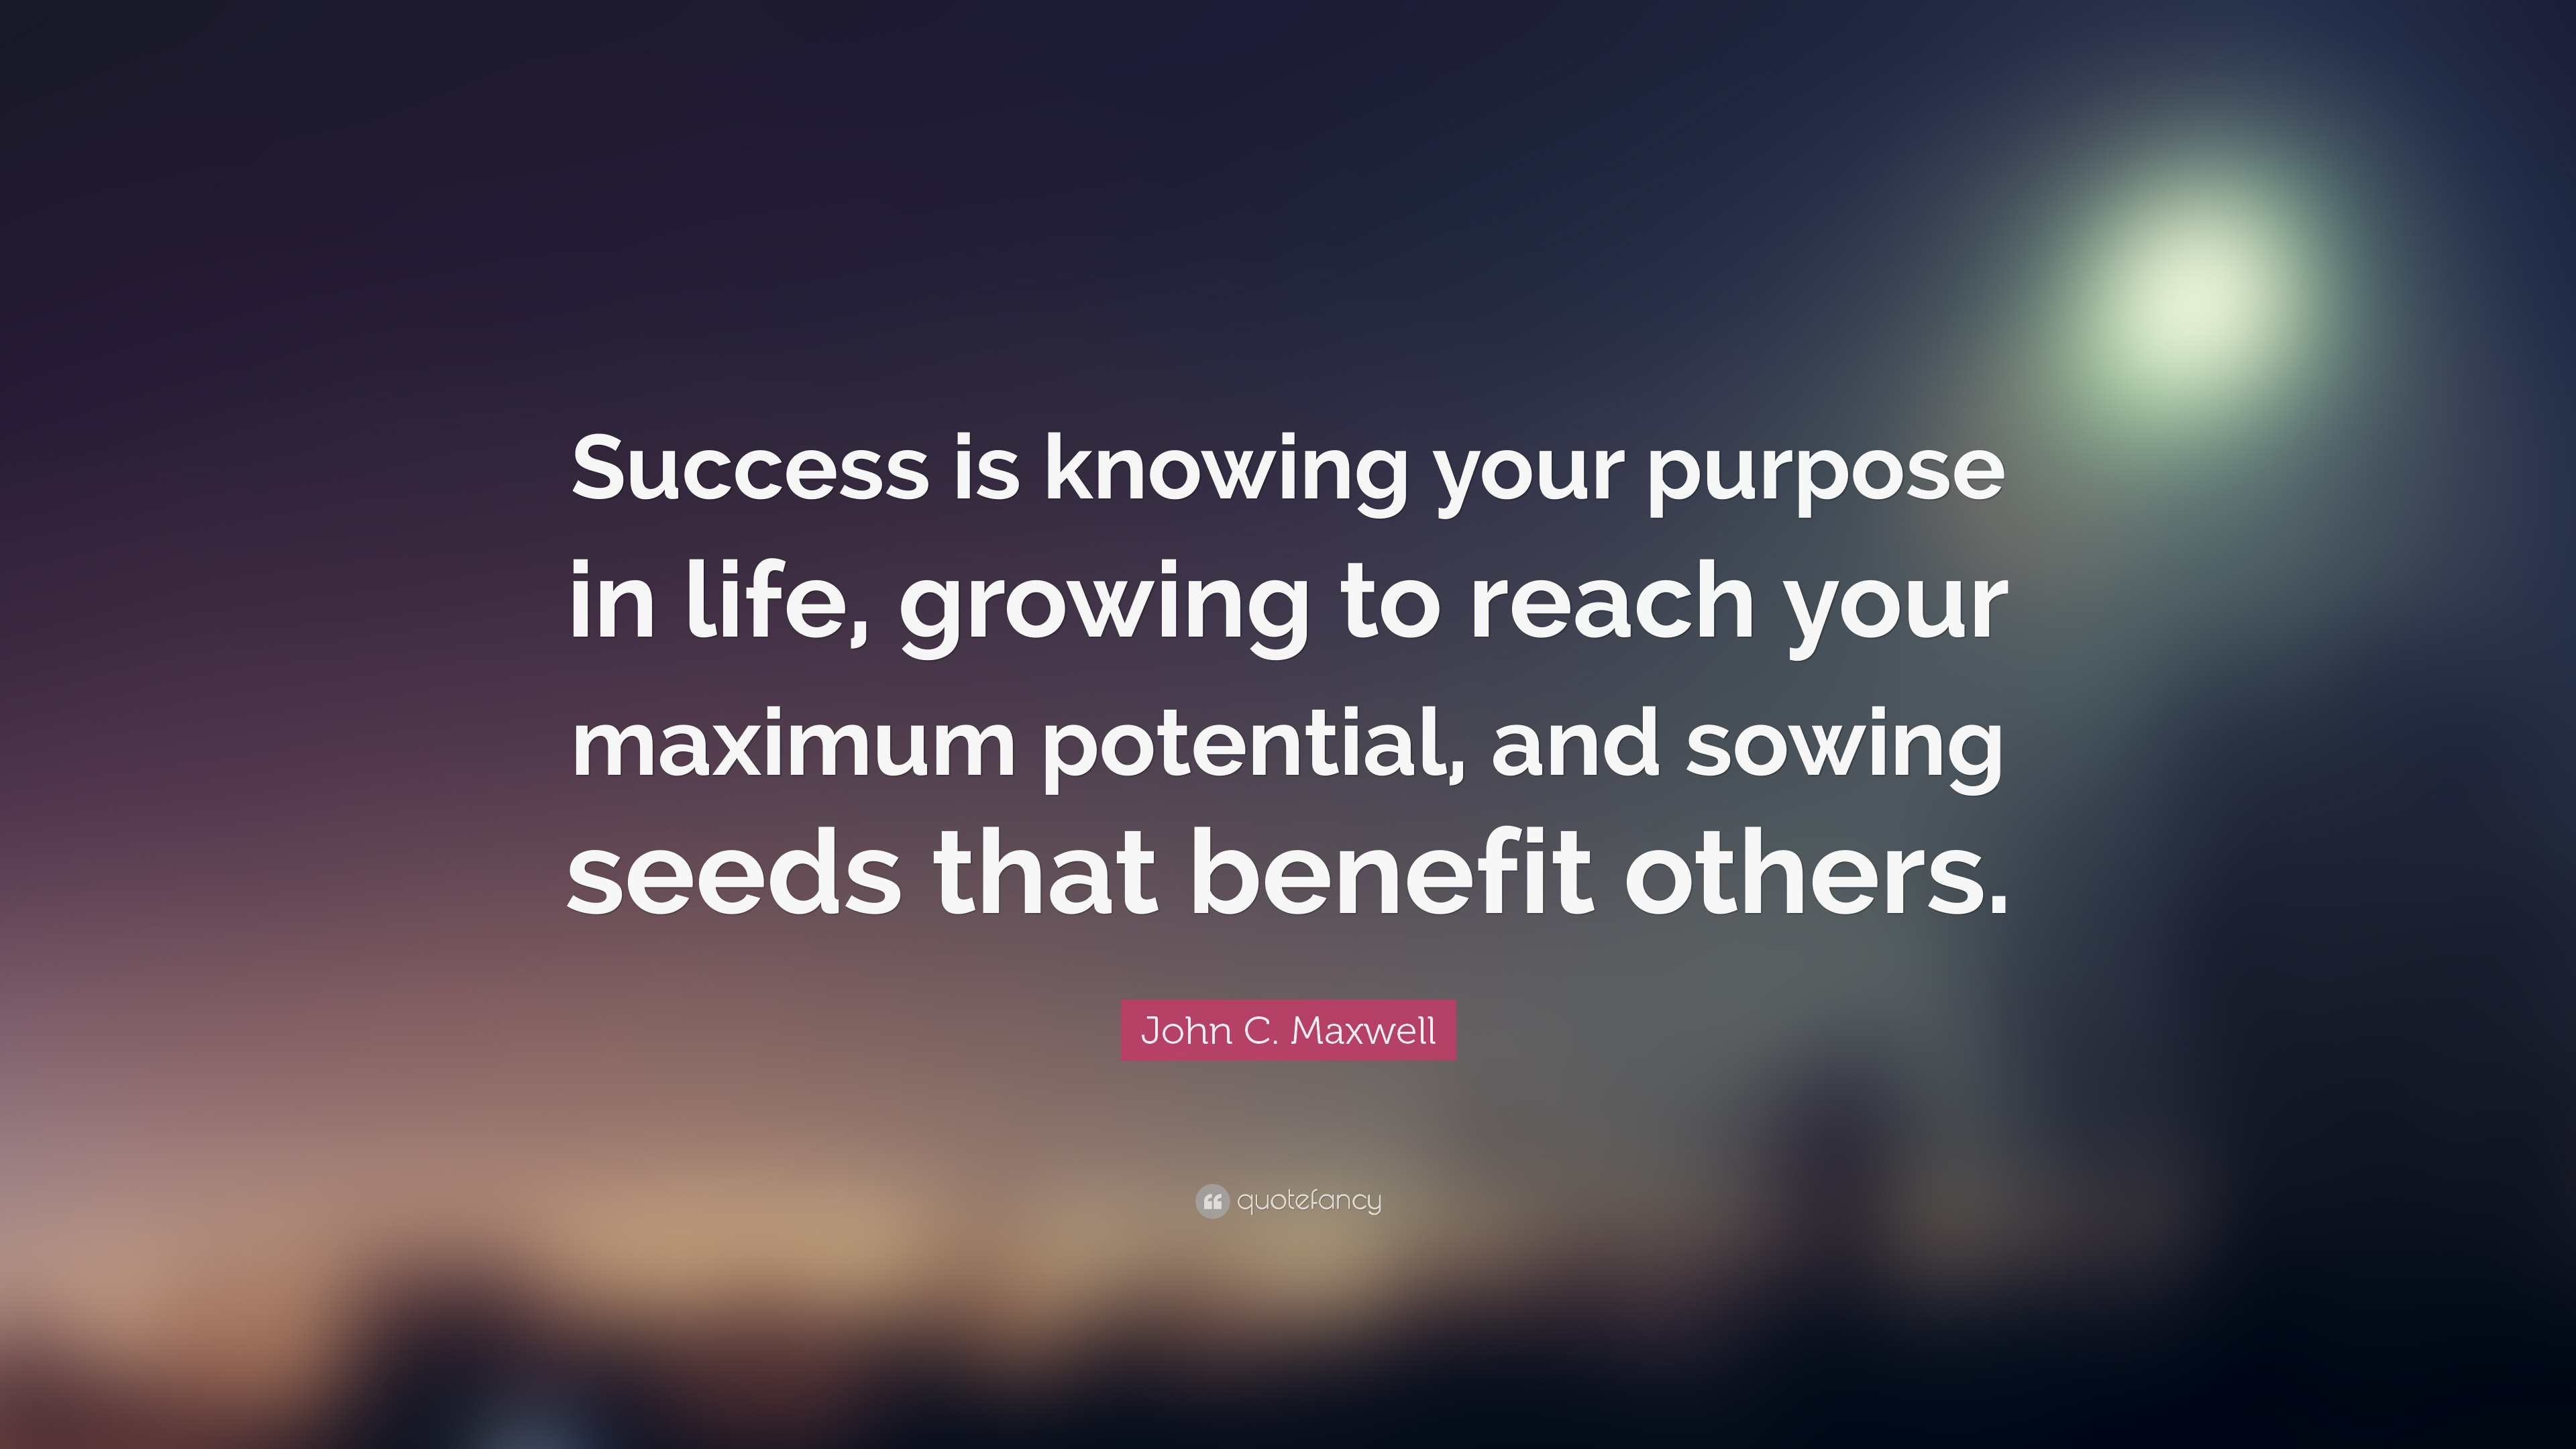 john c maxwell quote success is knowing your purpose in